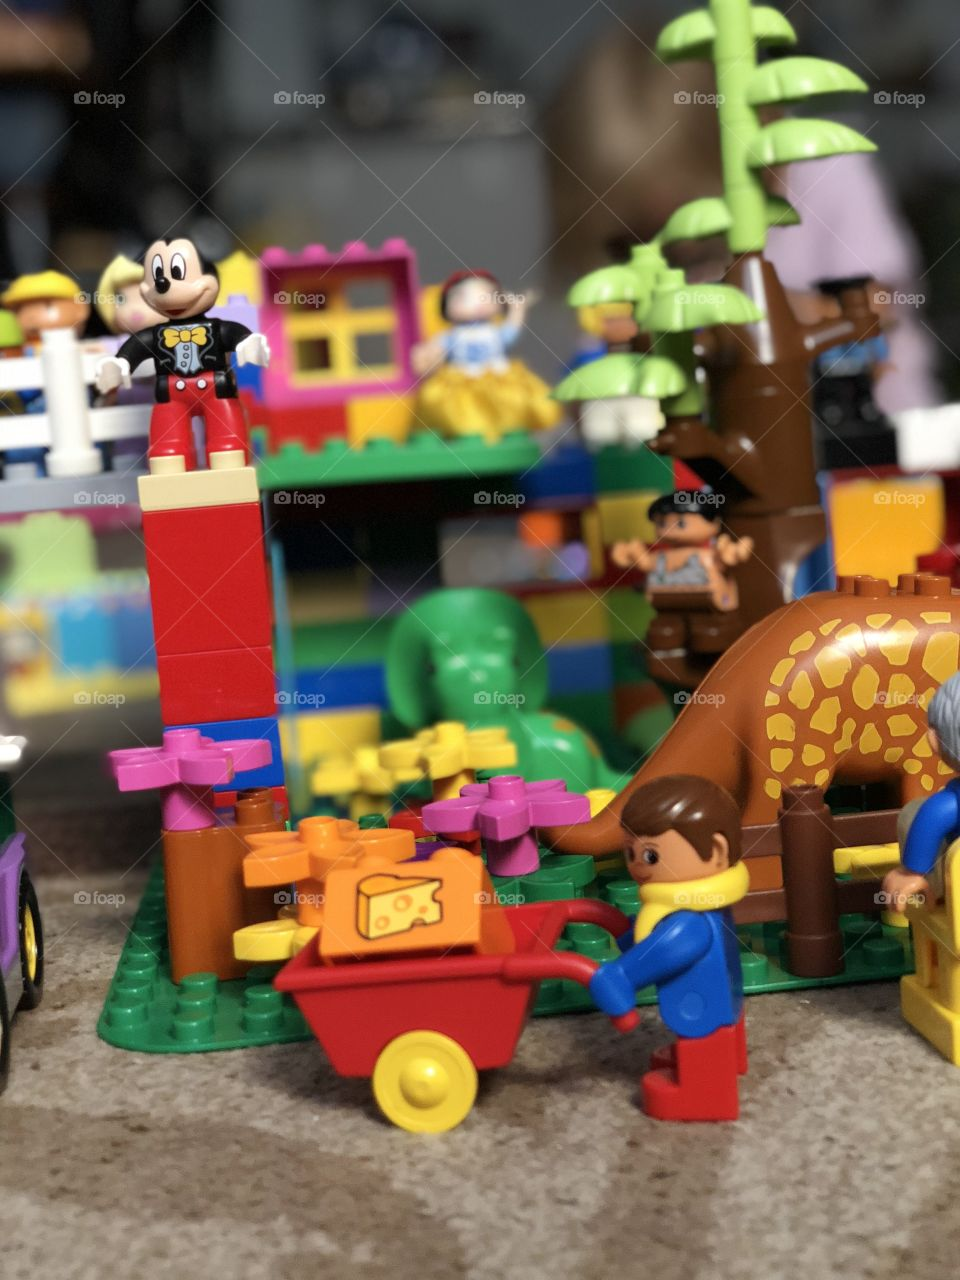 Duplo people and pets